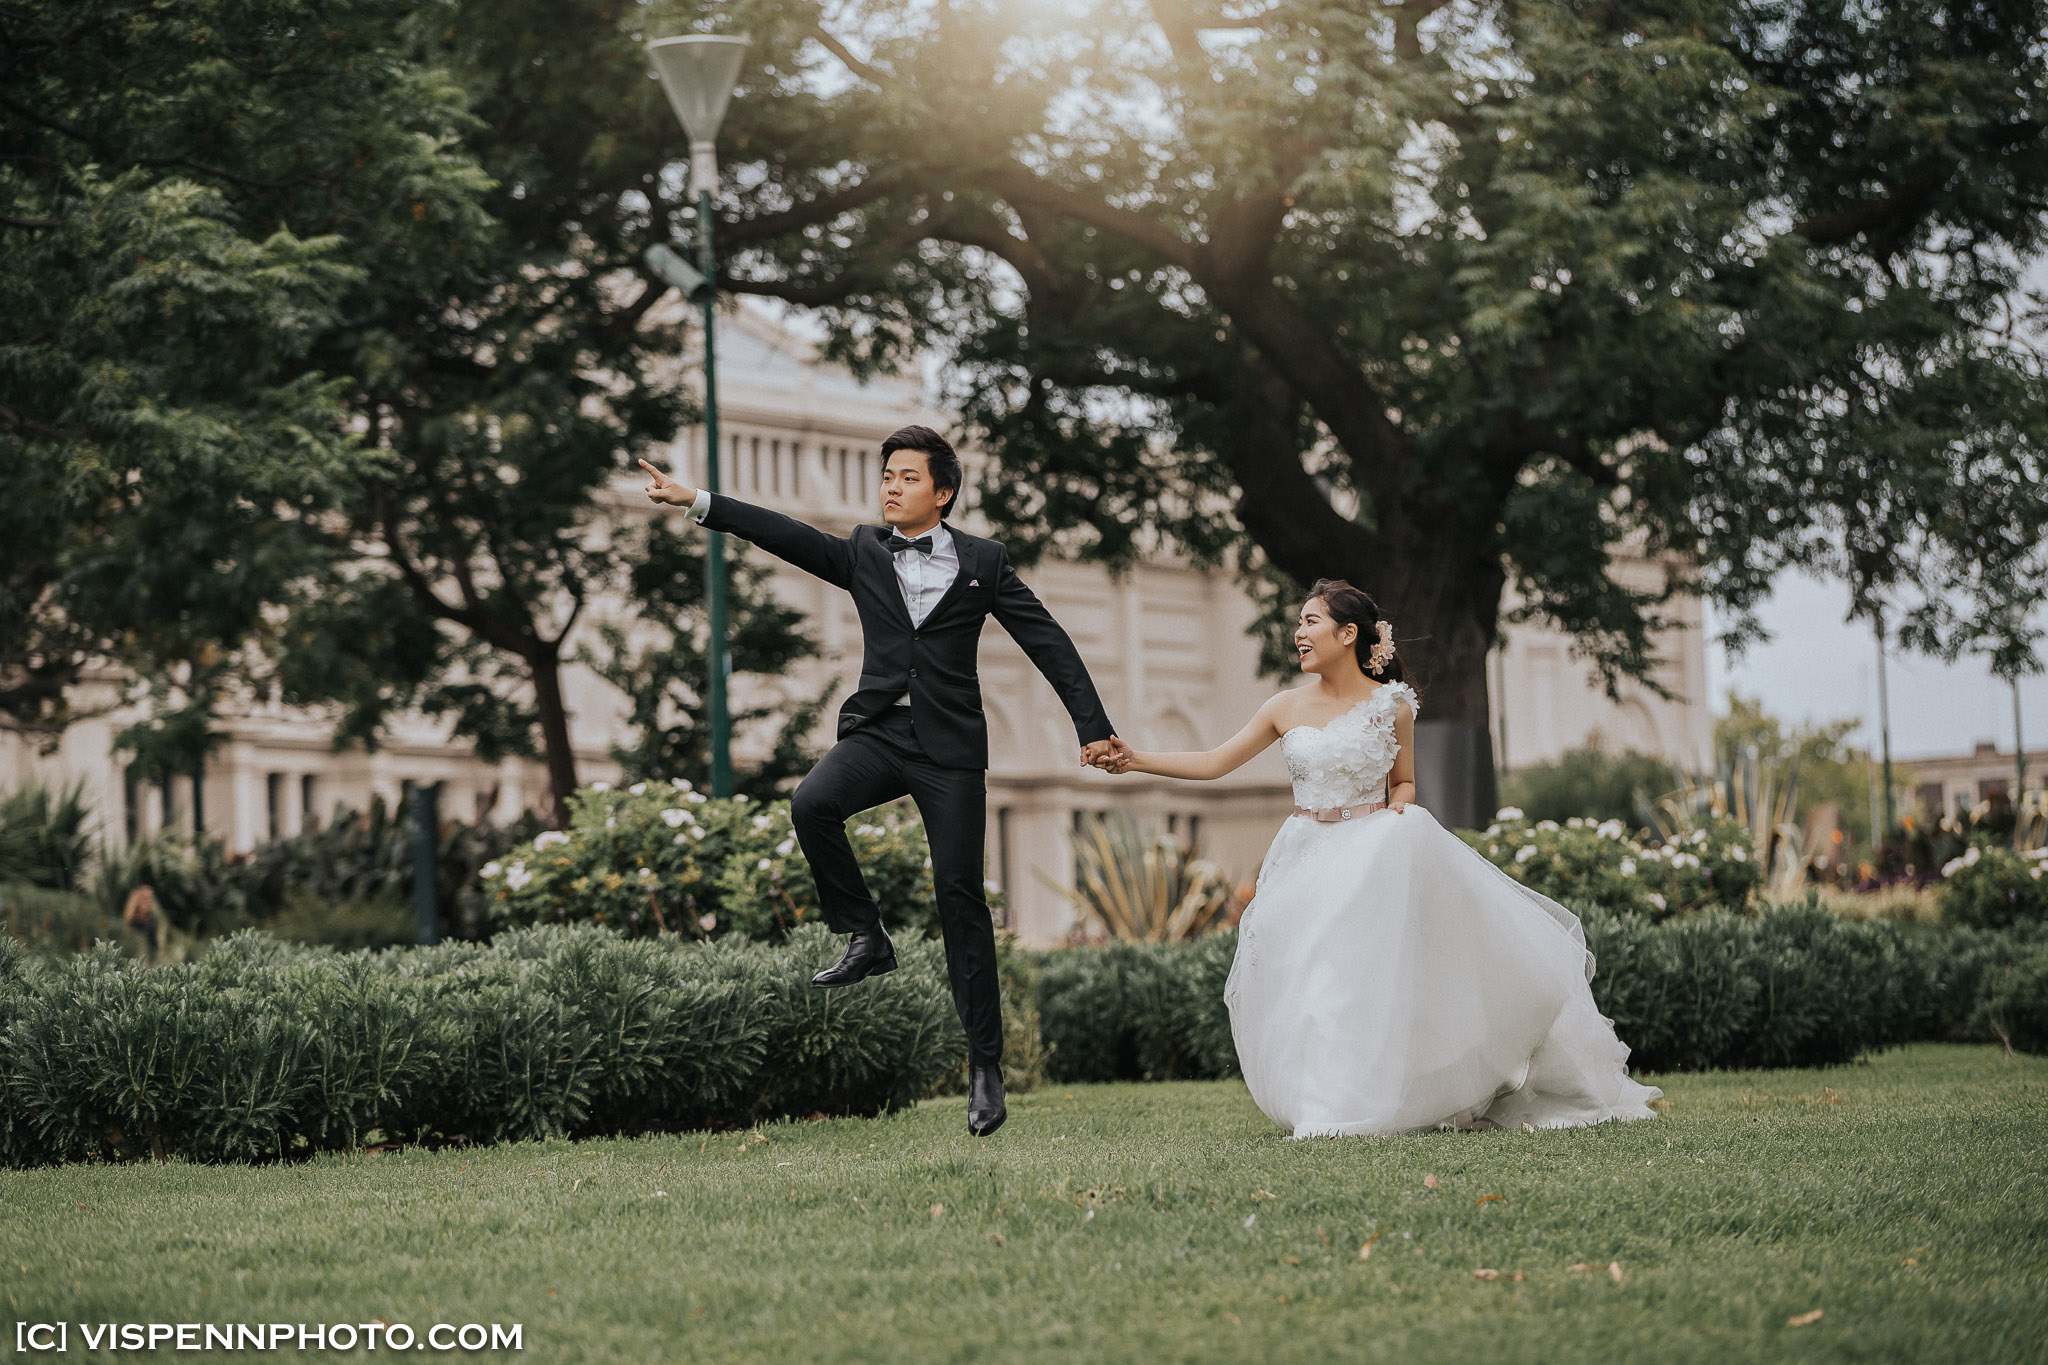 PRE WEDDING Photography Melbourne 1DX 1604